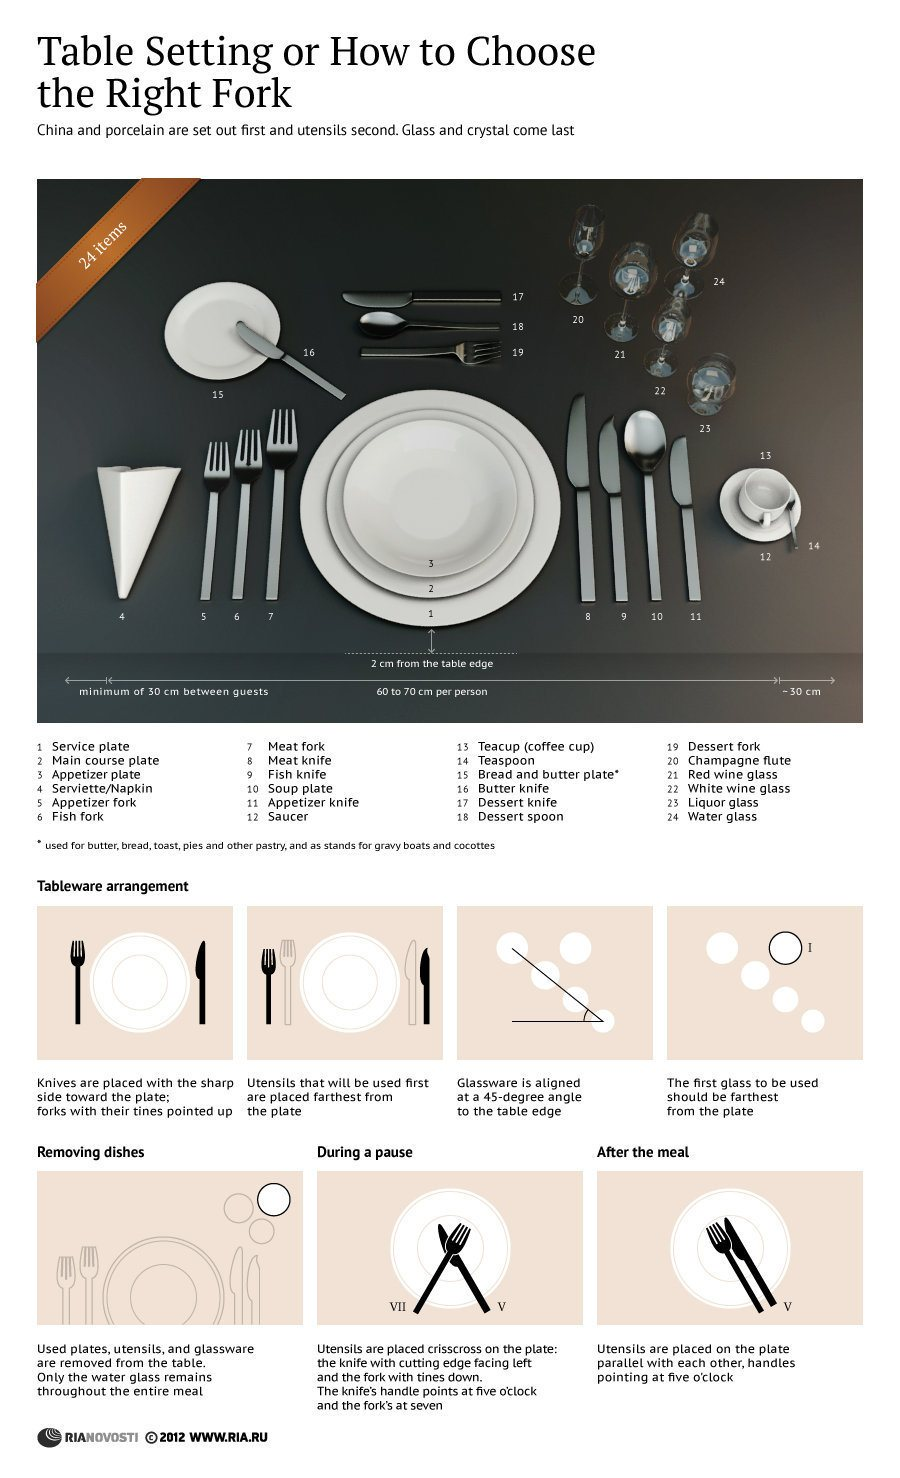 Table Setting or How to Choose the Right Fork